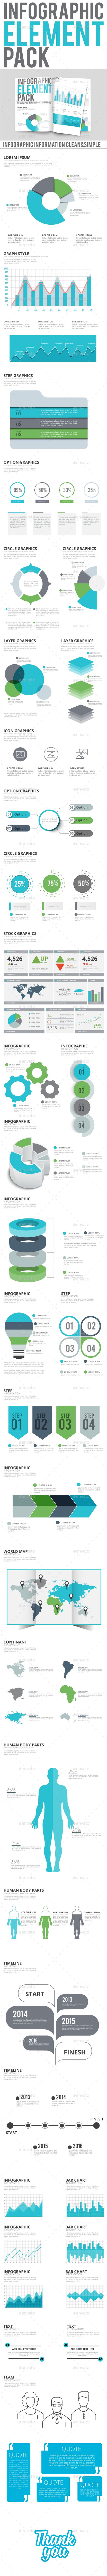 Innovative Infographic Element